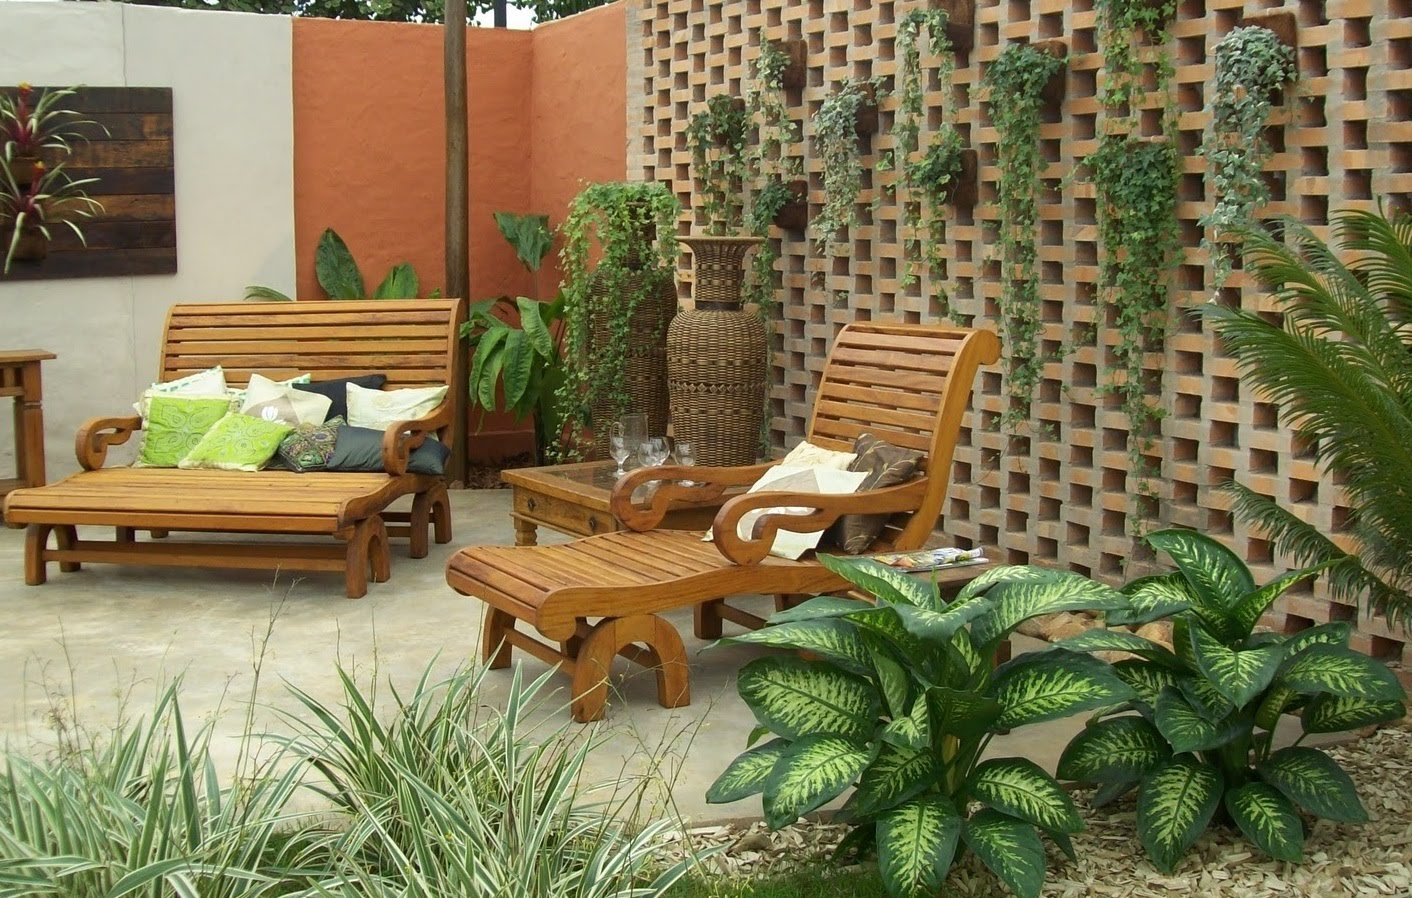 Jardines r sticos tendencia e ideas hoy lowcost for Decoracion para un jardin